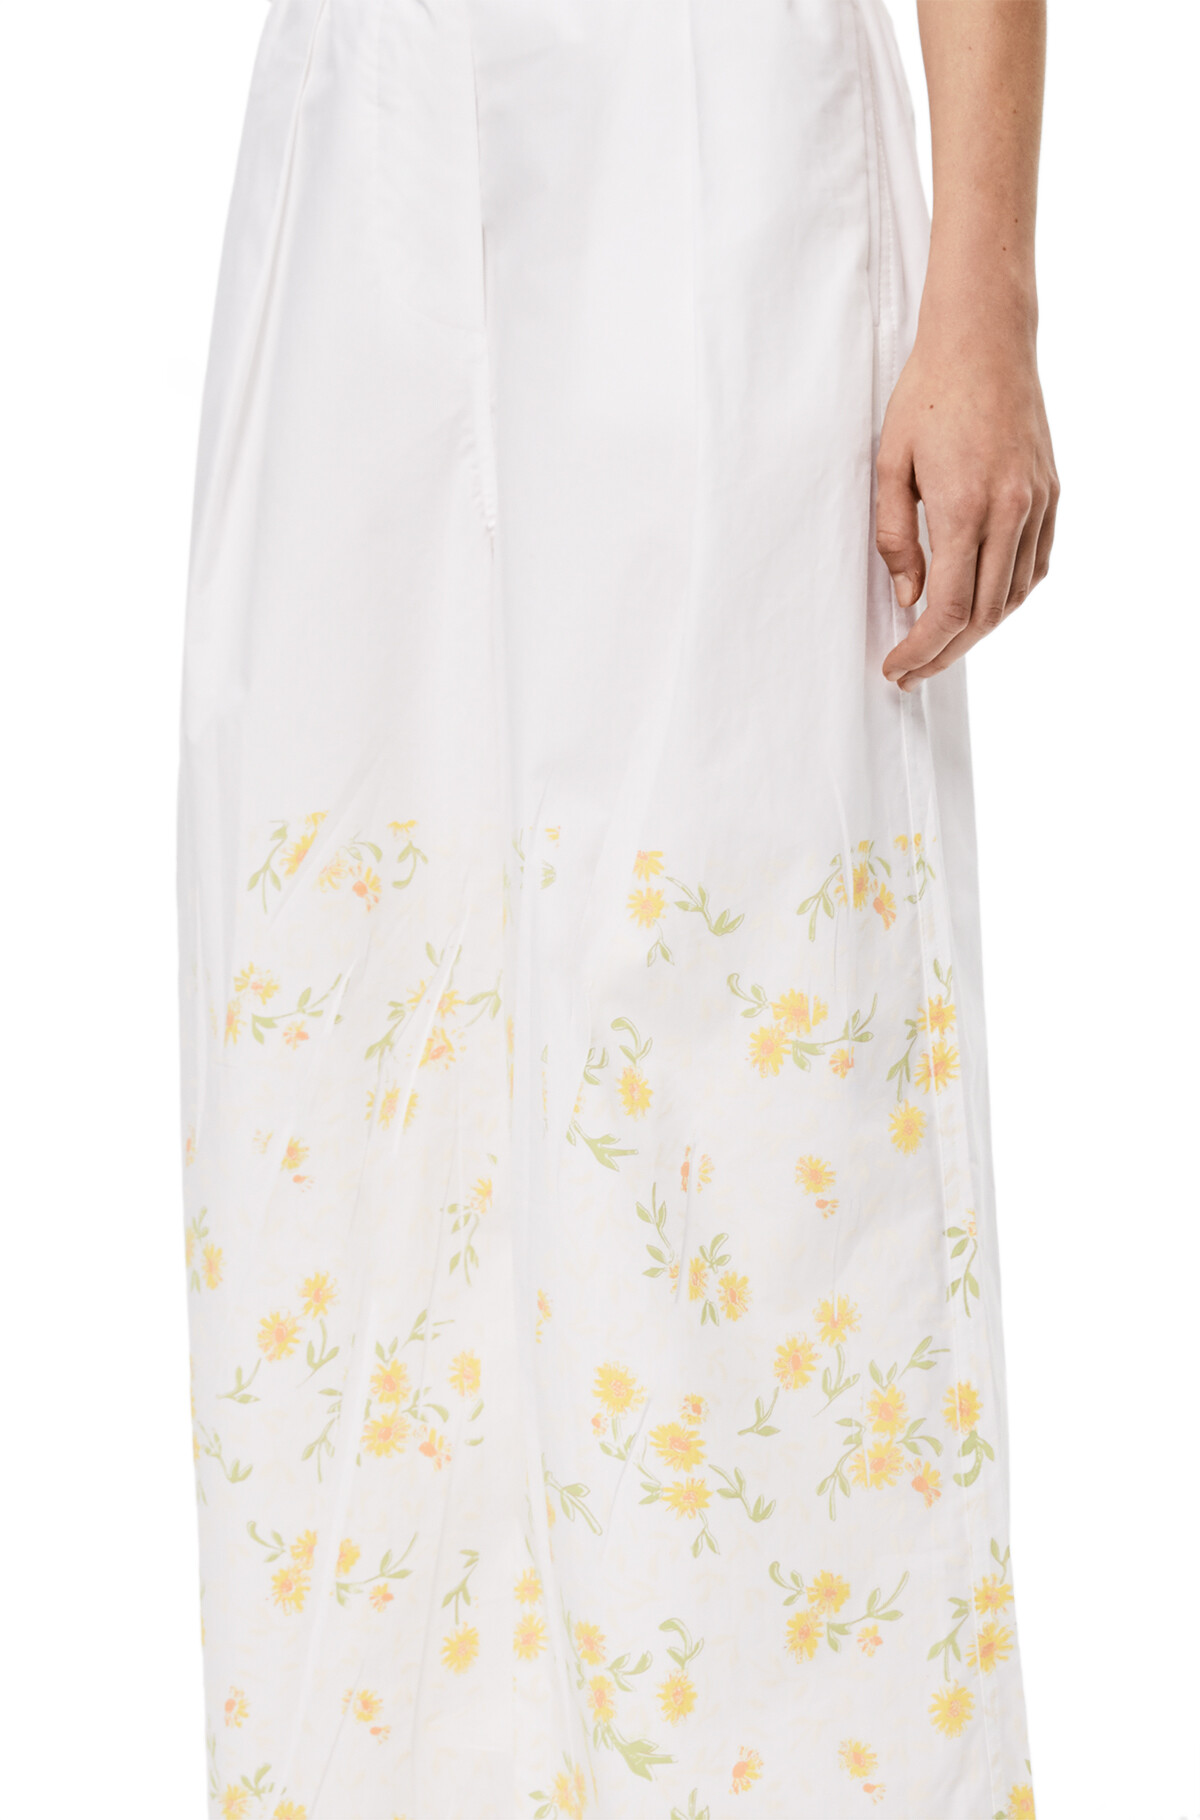 LOEWE Flower Print Cropped Trousers White/Yellow front